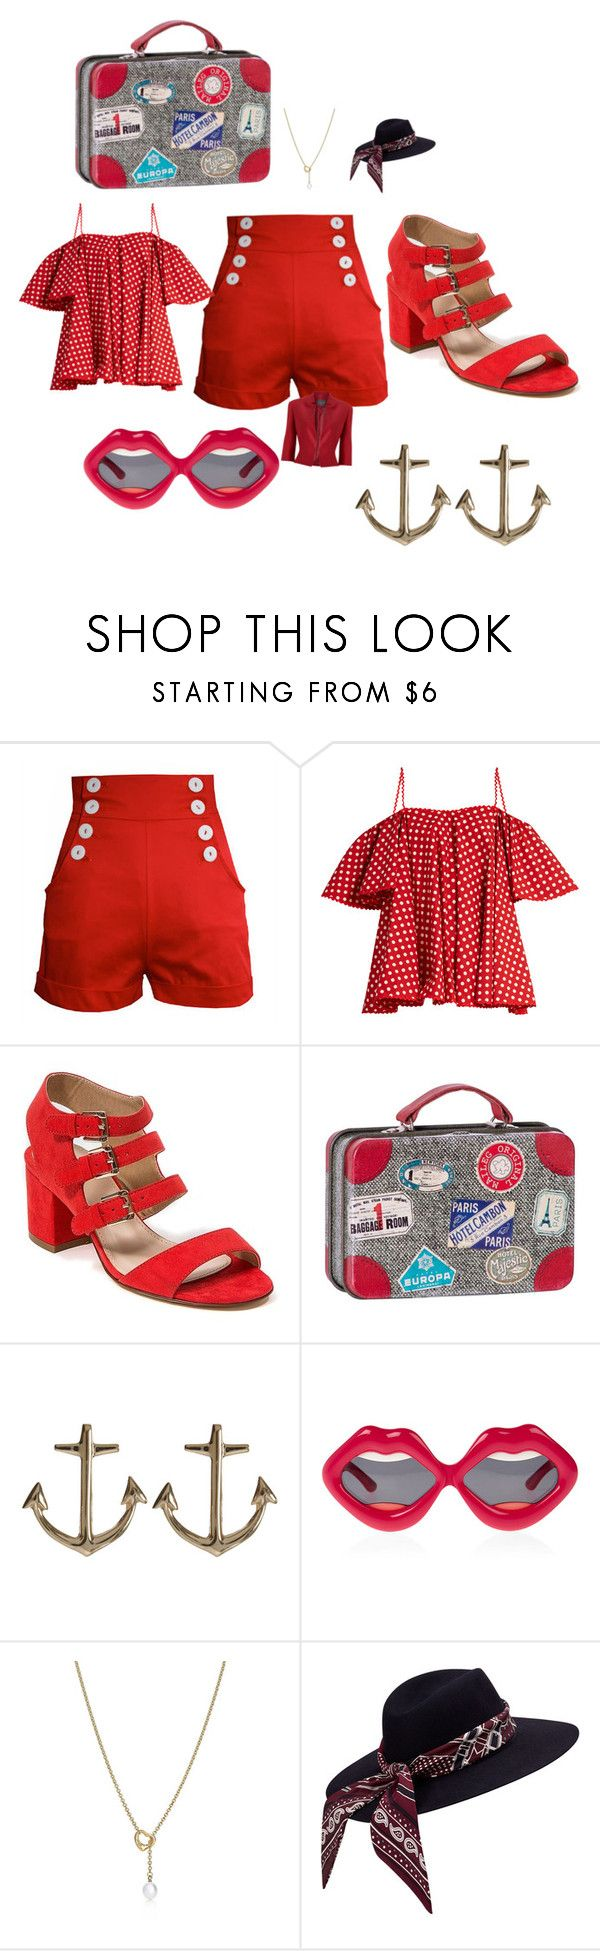 """Untitled #5641"" by brittklein ❤ liked on Polyvore featuring Tara Starlet, Anna October, French Blu, Maileg, Minor Obsessions, Linda Farrow, Tiffany & Co. and Phase Eight"